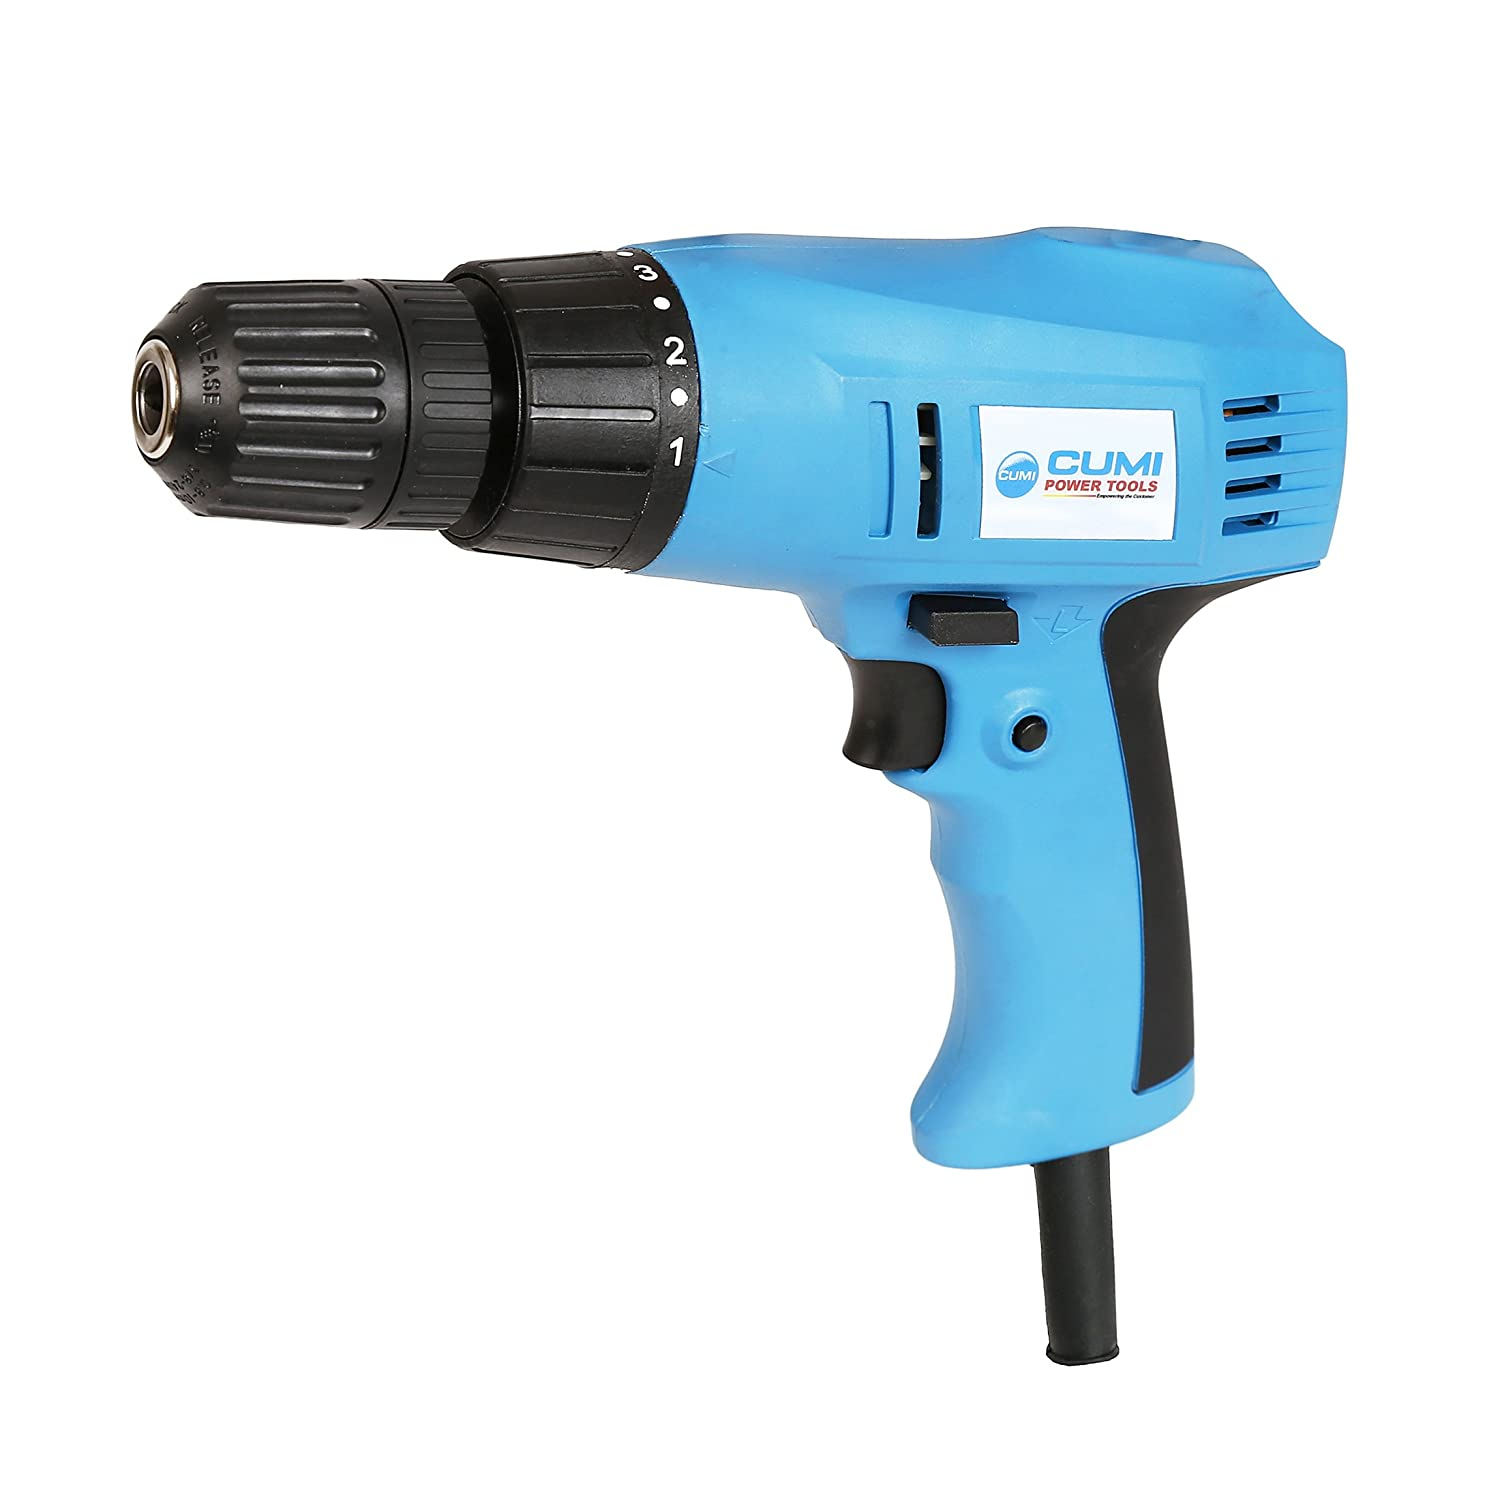 Cumi Electric Screw Driver / Drill – CSD 010 (Blue)